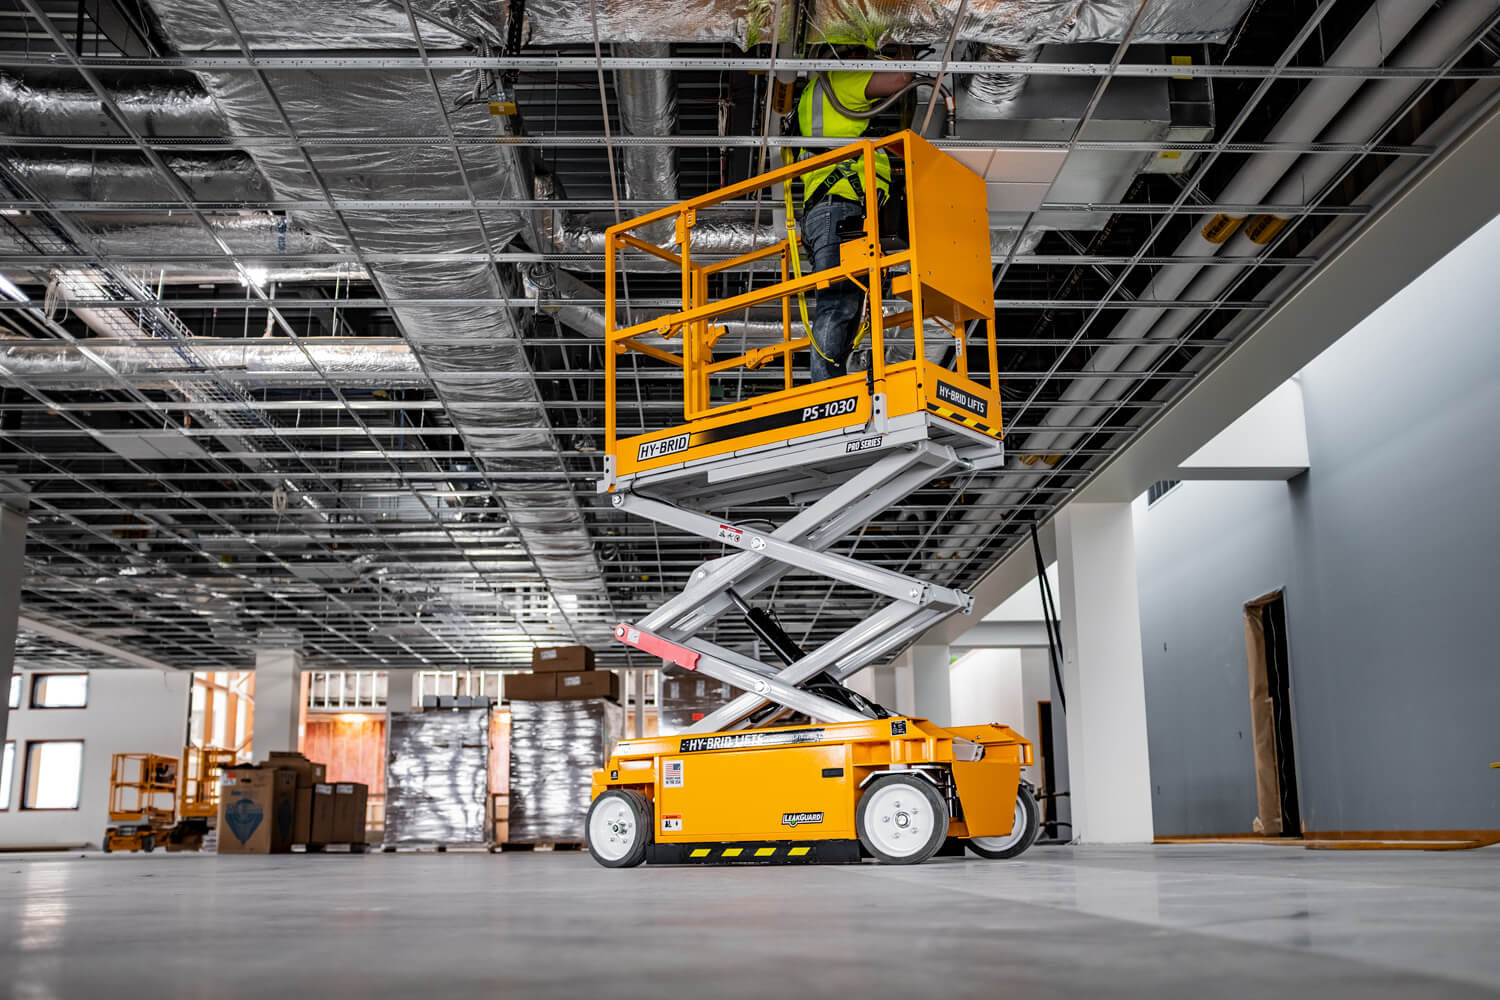 Hy-Brid PS-1030 Mobile Elevating Work Platform